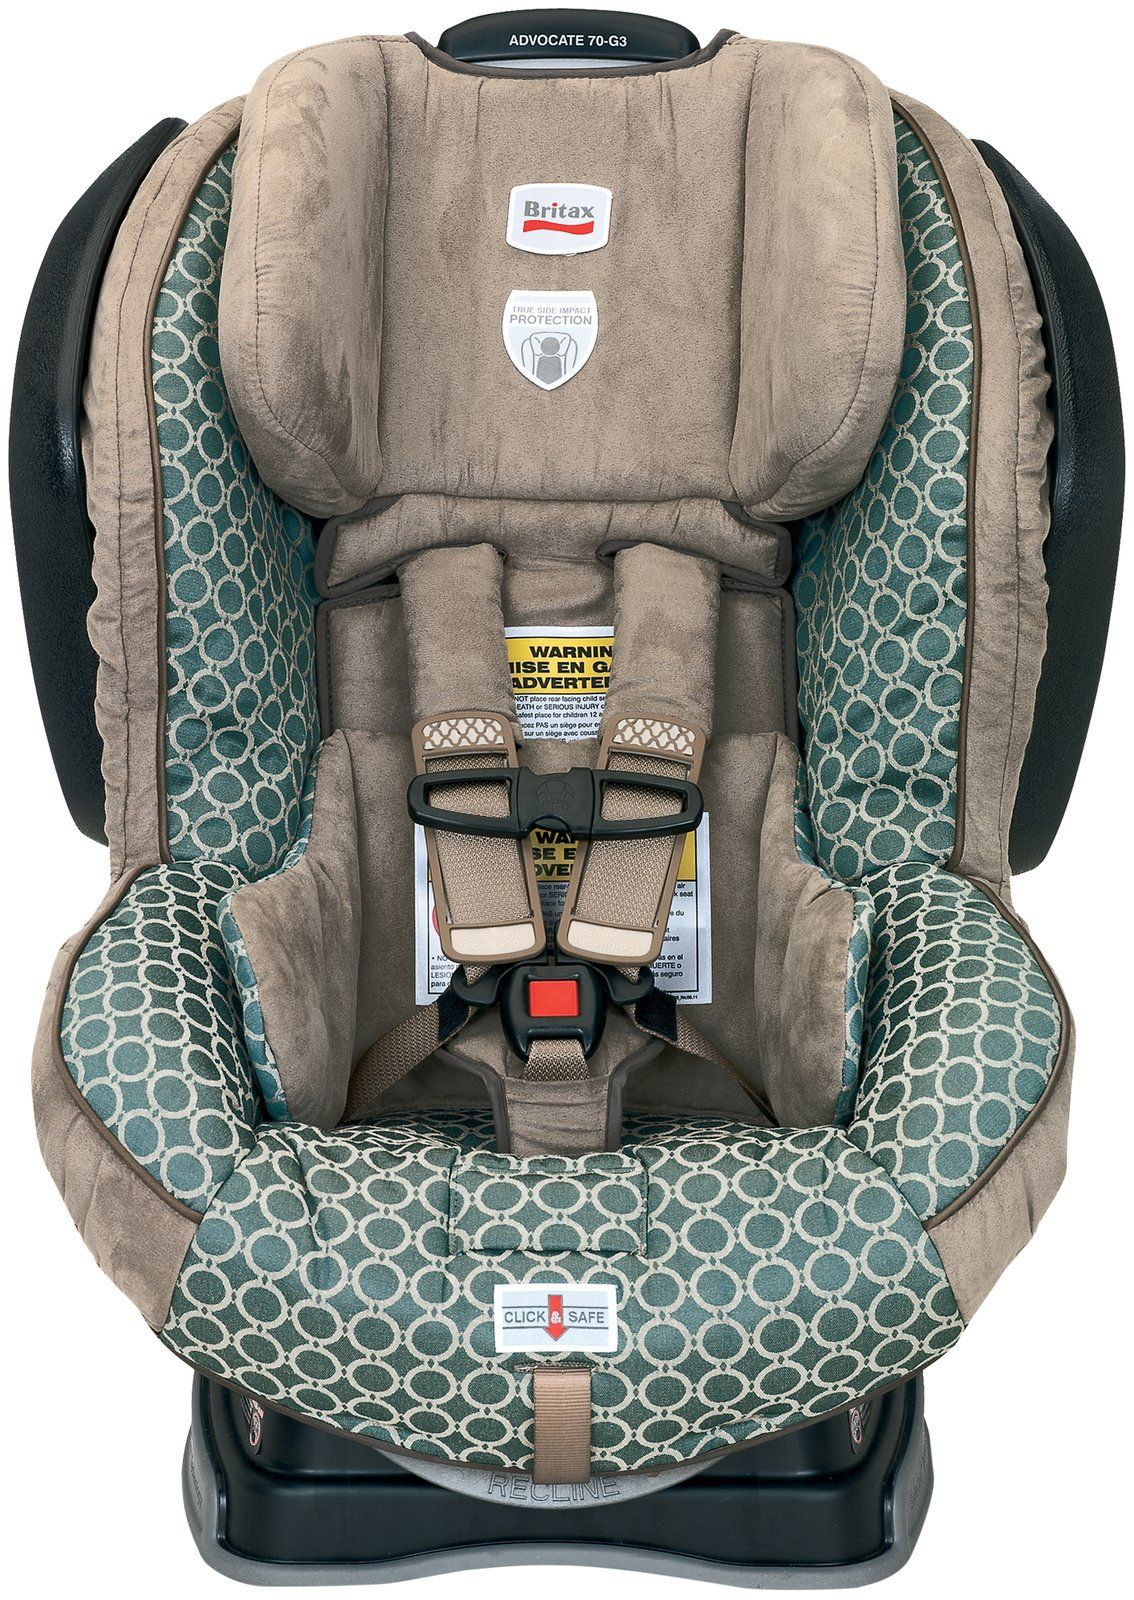 britax marathon 70 g3 convertible car seat replacement cover velcromag. Black Bedroom Furniture Sets. Home Design Ideas